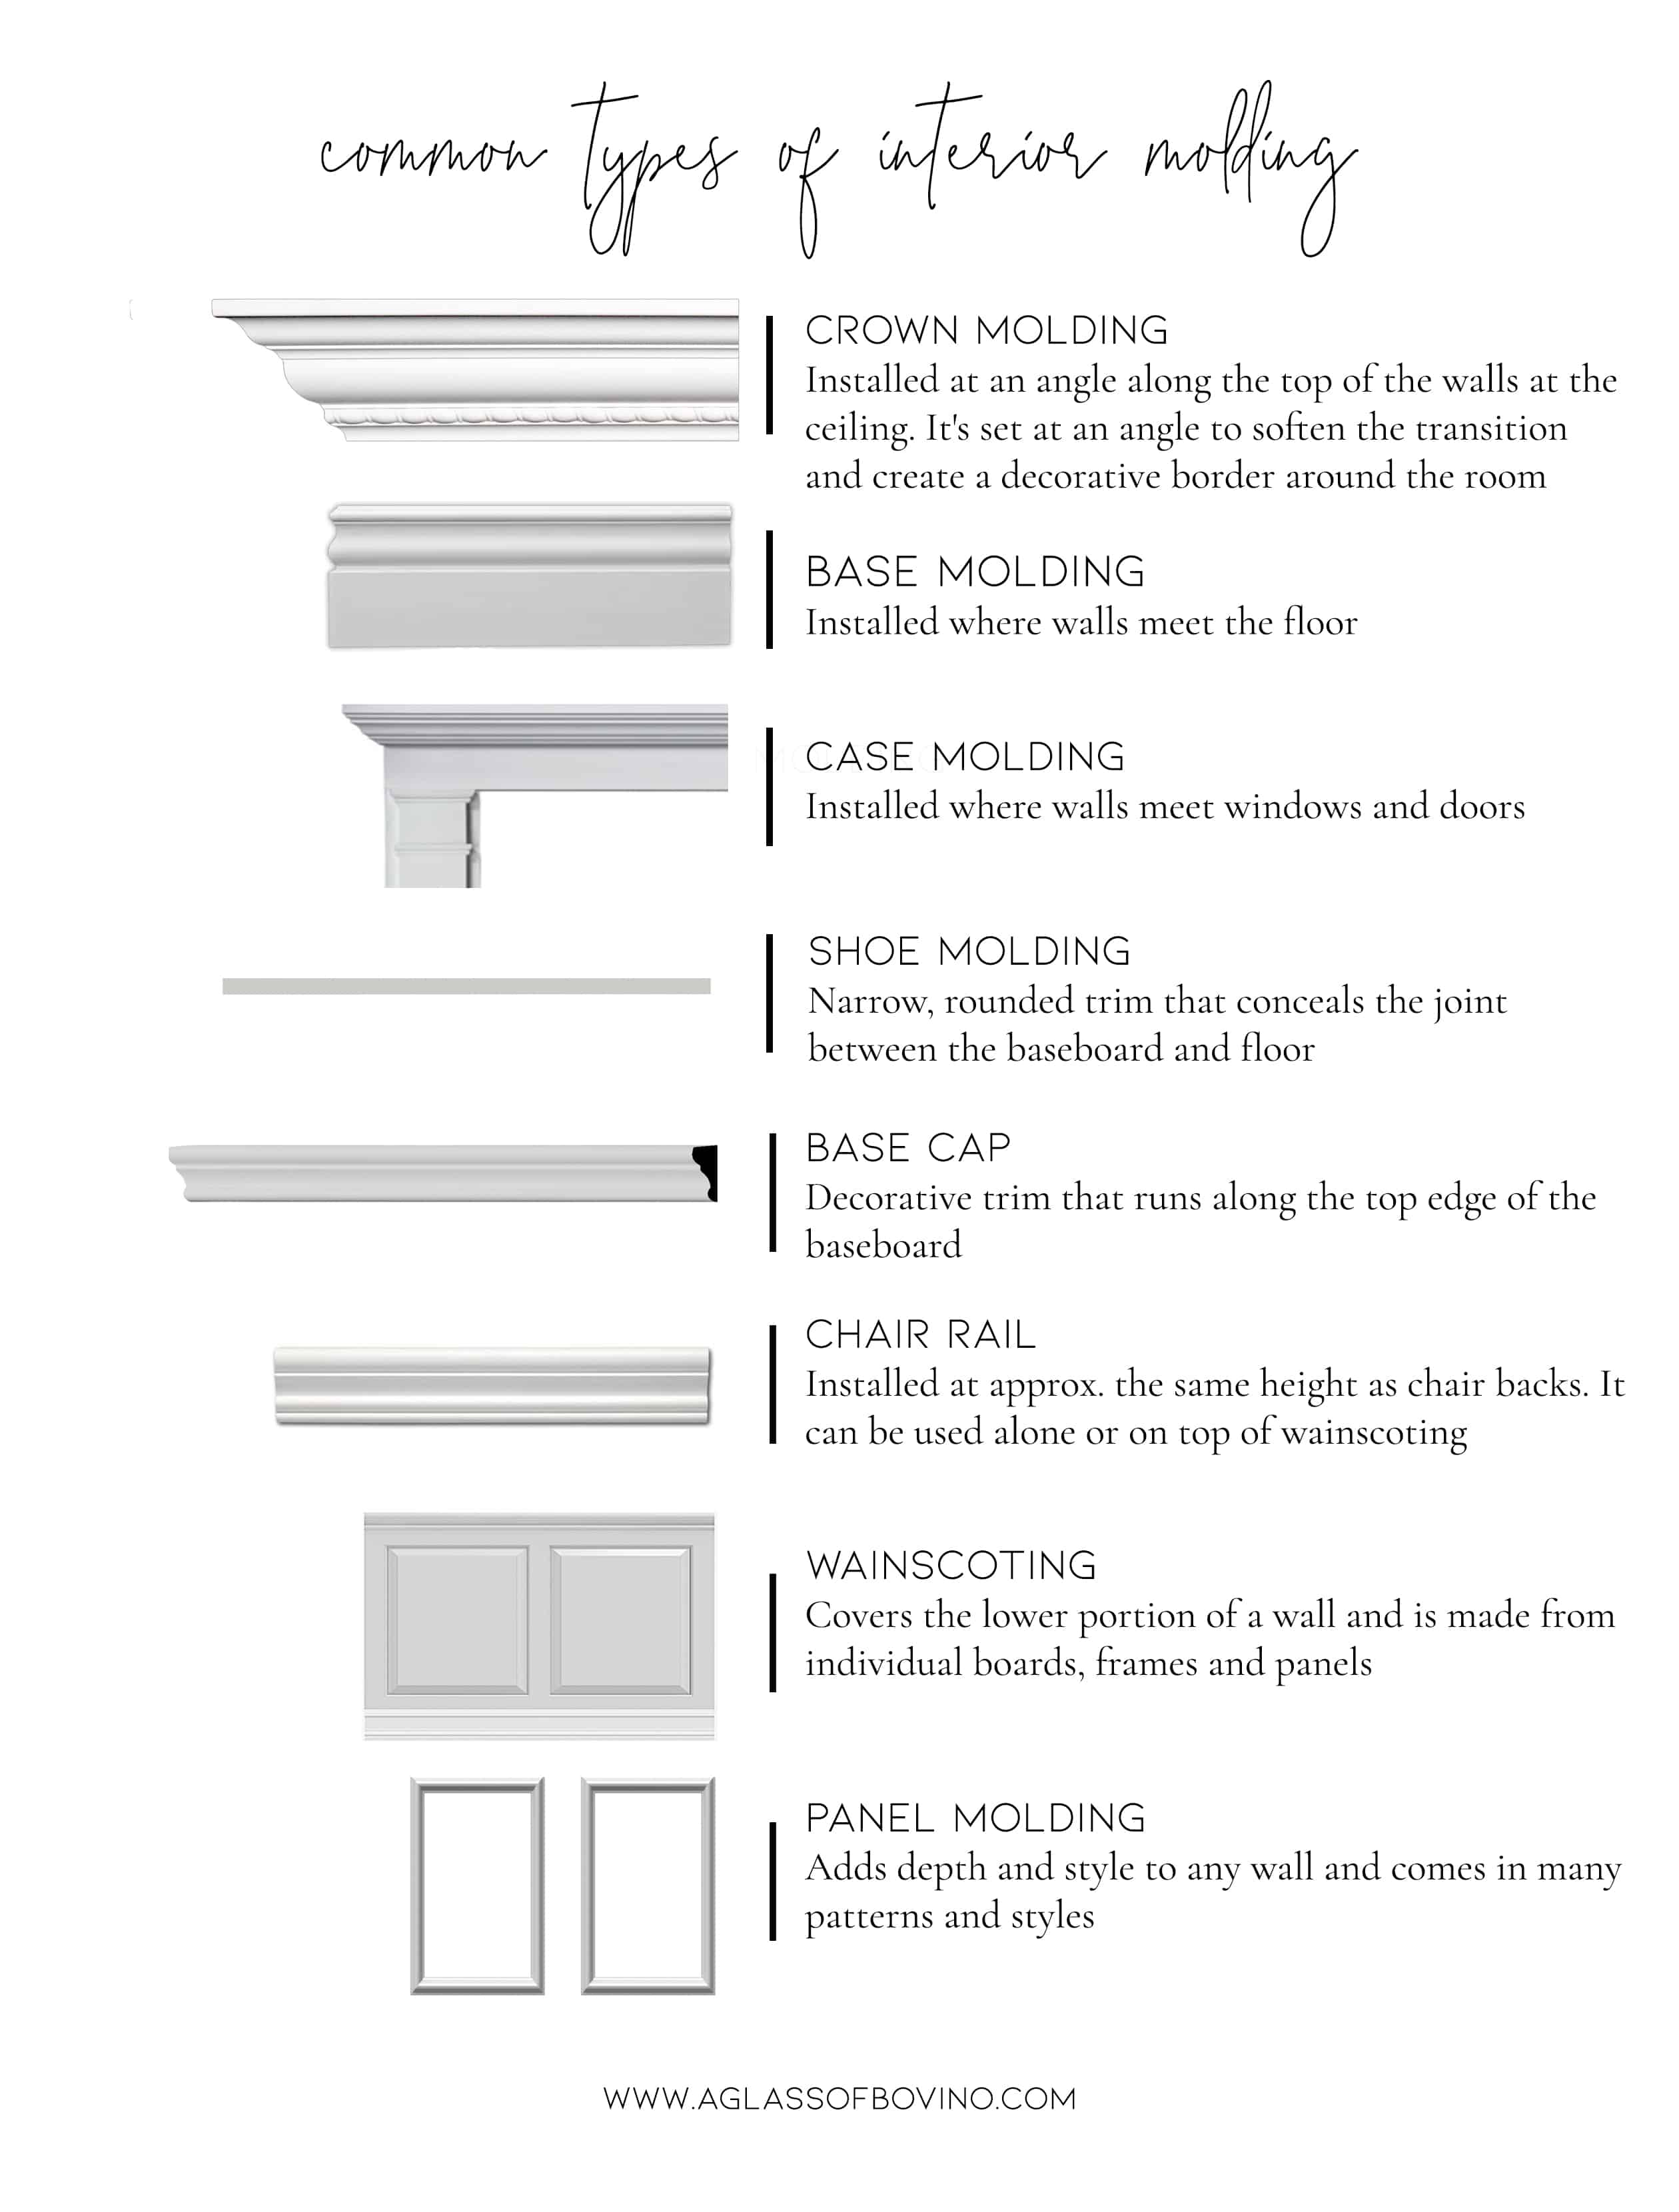 common-types-of-interior-molding-and-trim